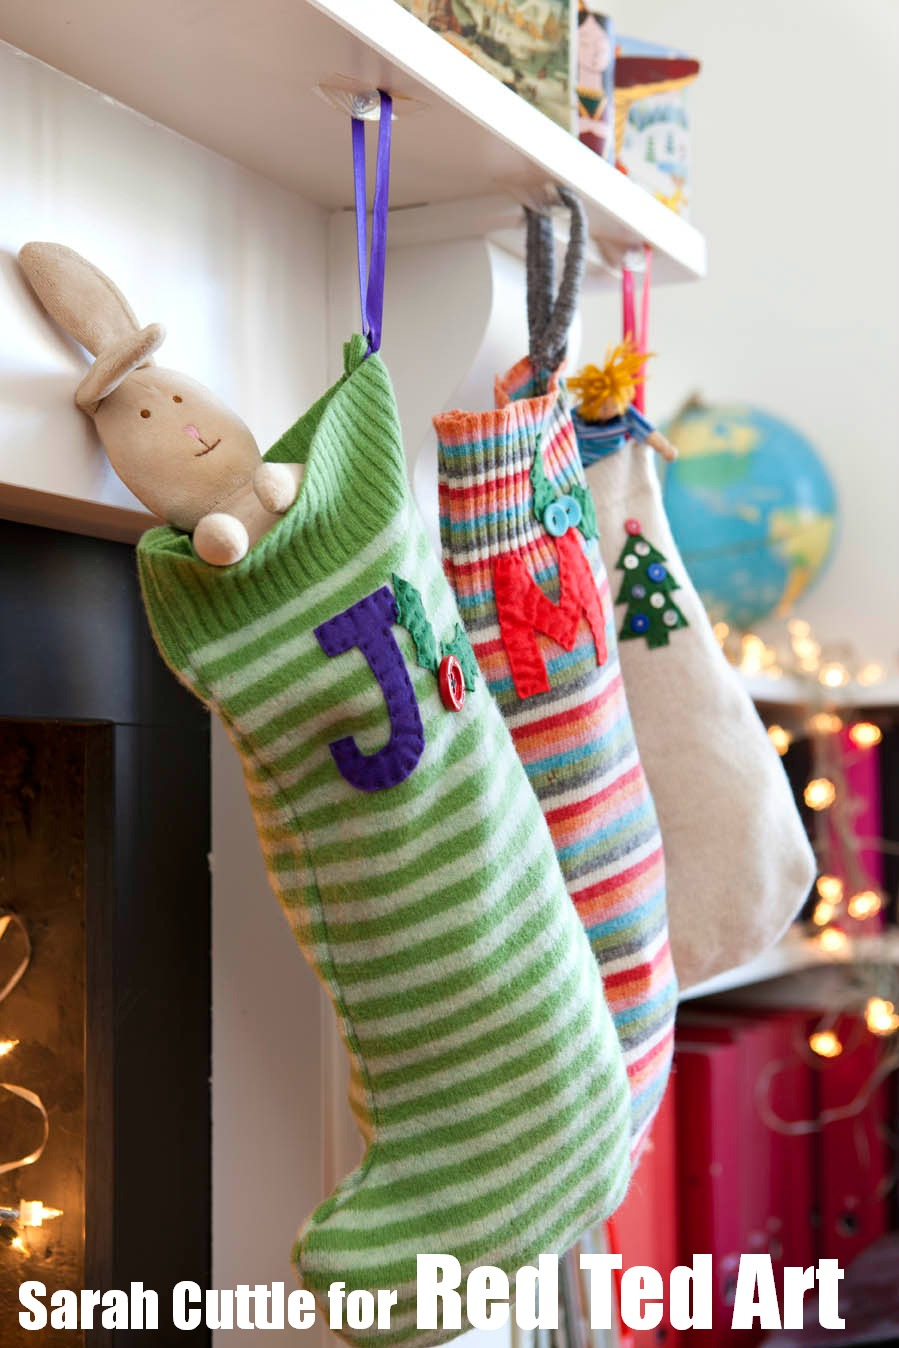 Captivating knit christmas stockings with multicolorful christmas stocking and fireplace at chistmas day interior design